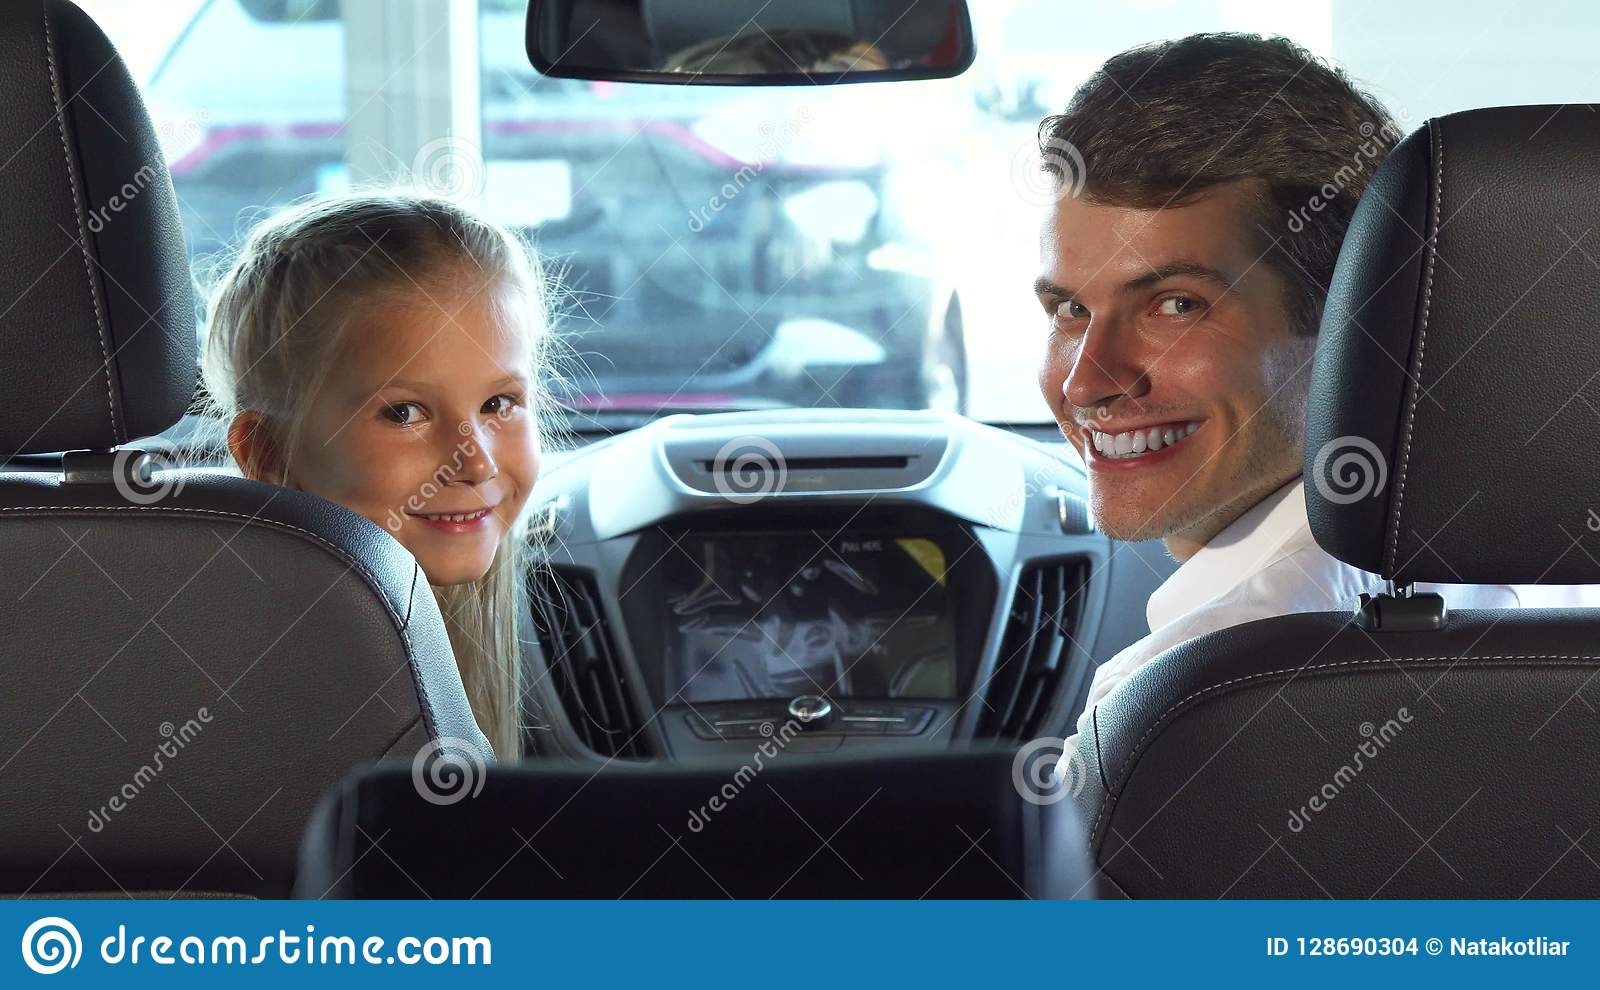 Funny Dad With His Daughter Sit In The Front Seats And Look At The